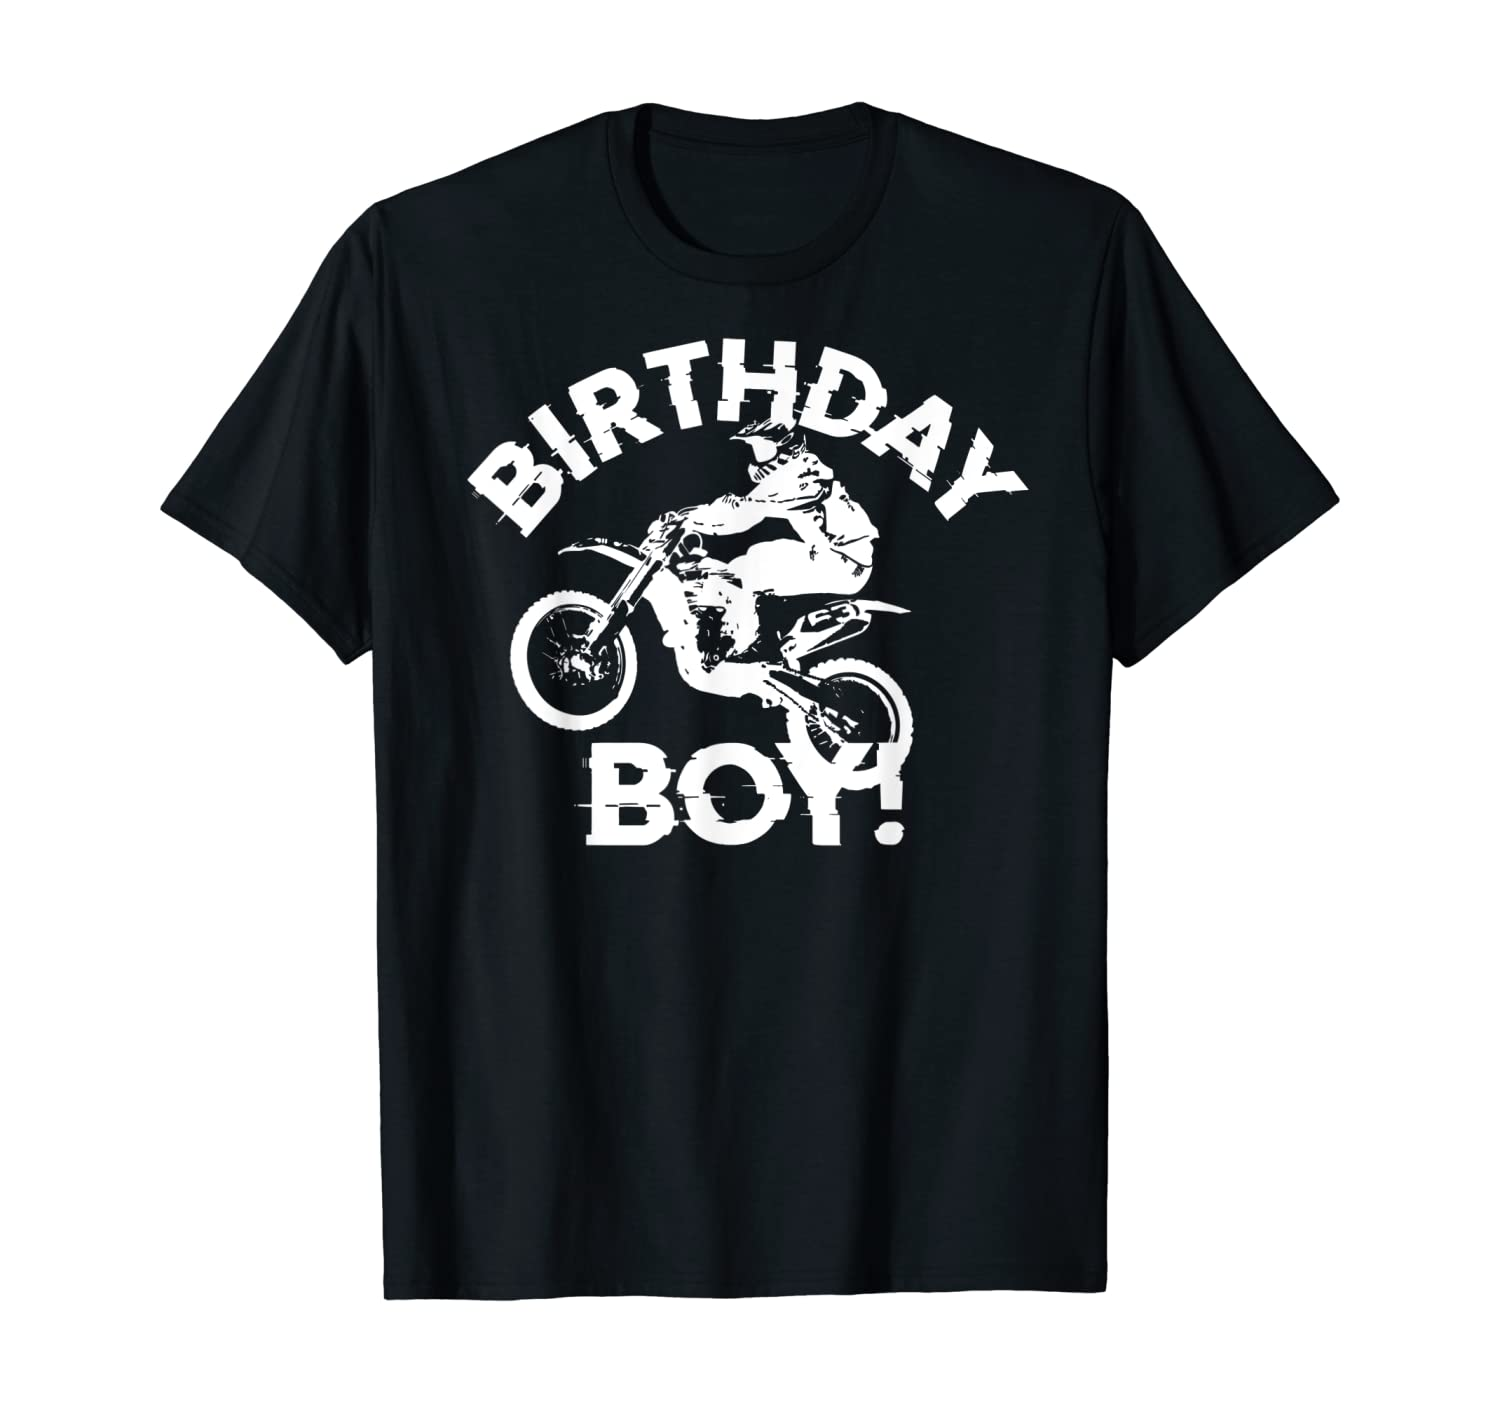 Dirt Bike Motocross Rider B-day Boy Extreme Birthday Shirt